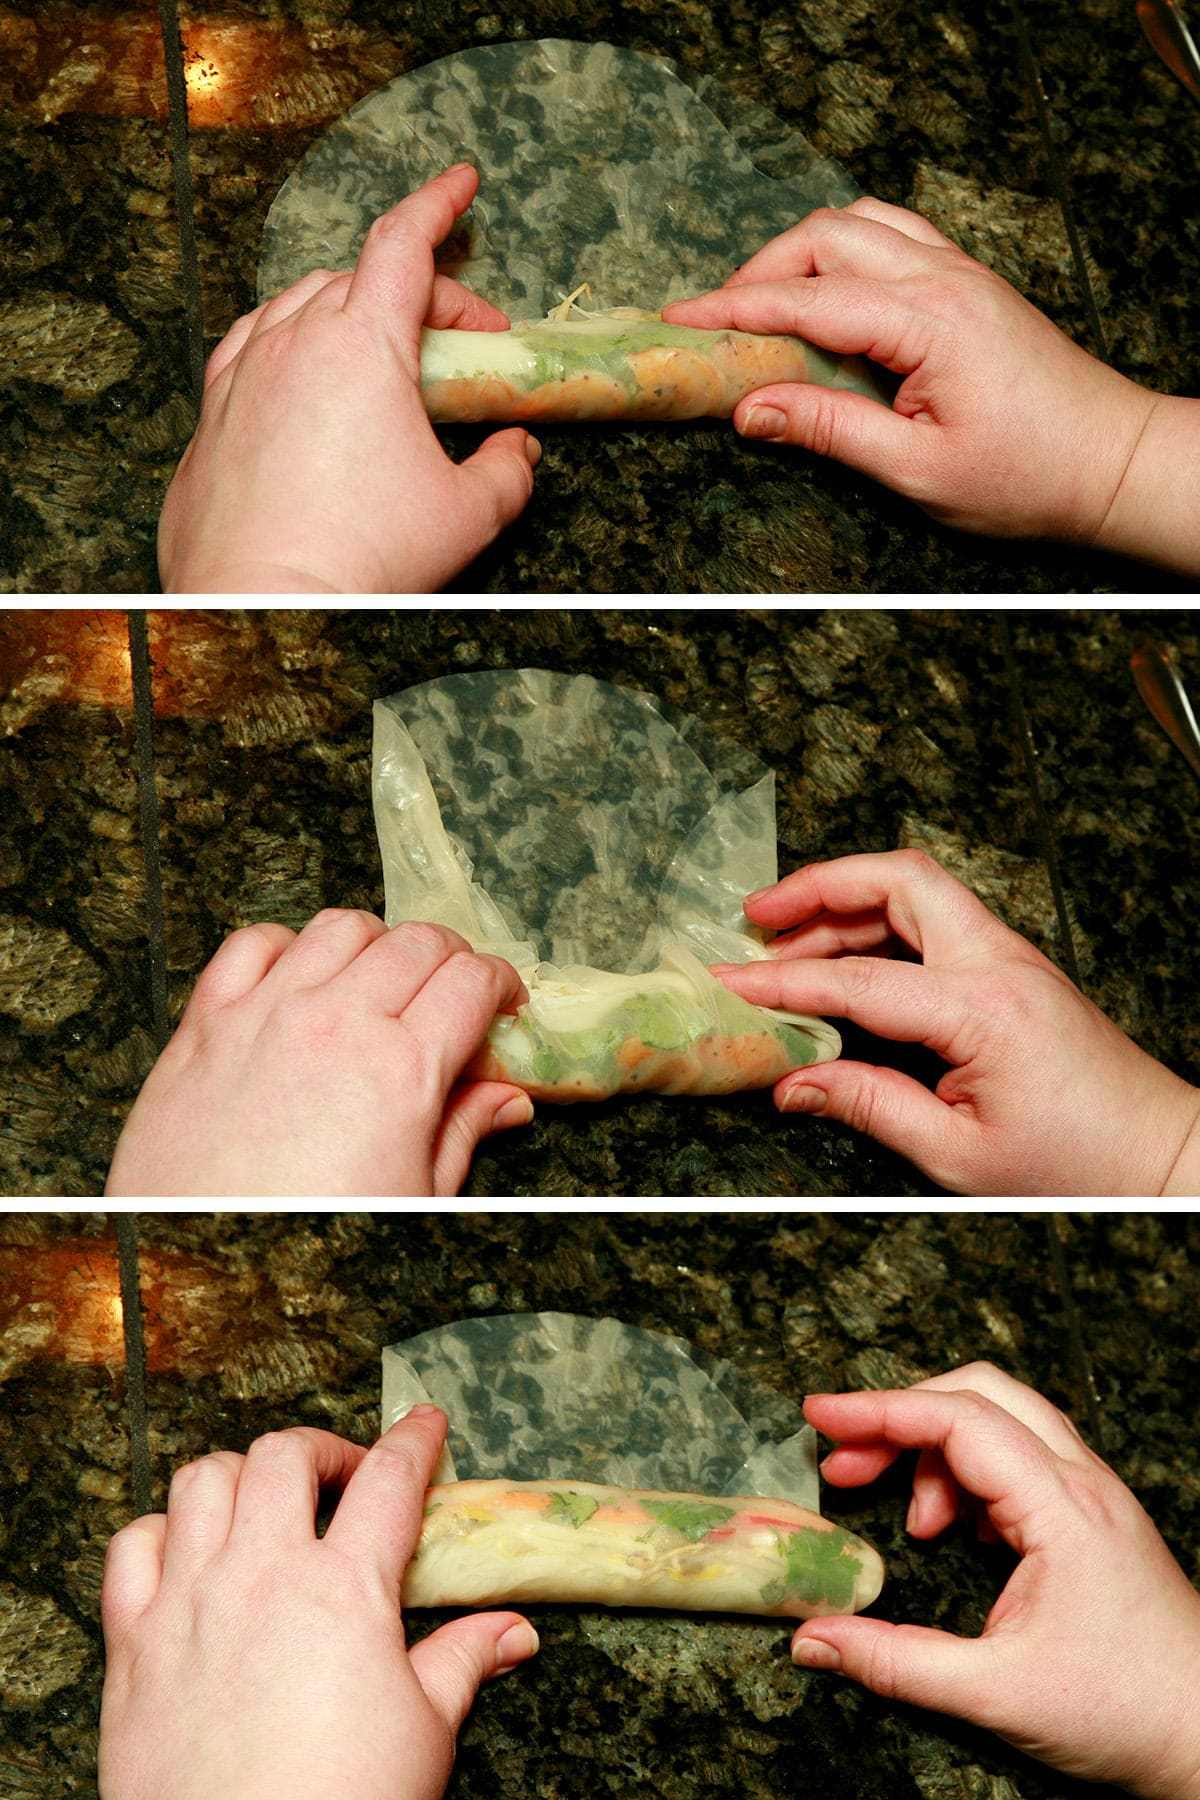 A three part compilation image showing the rolling of a spring roll.